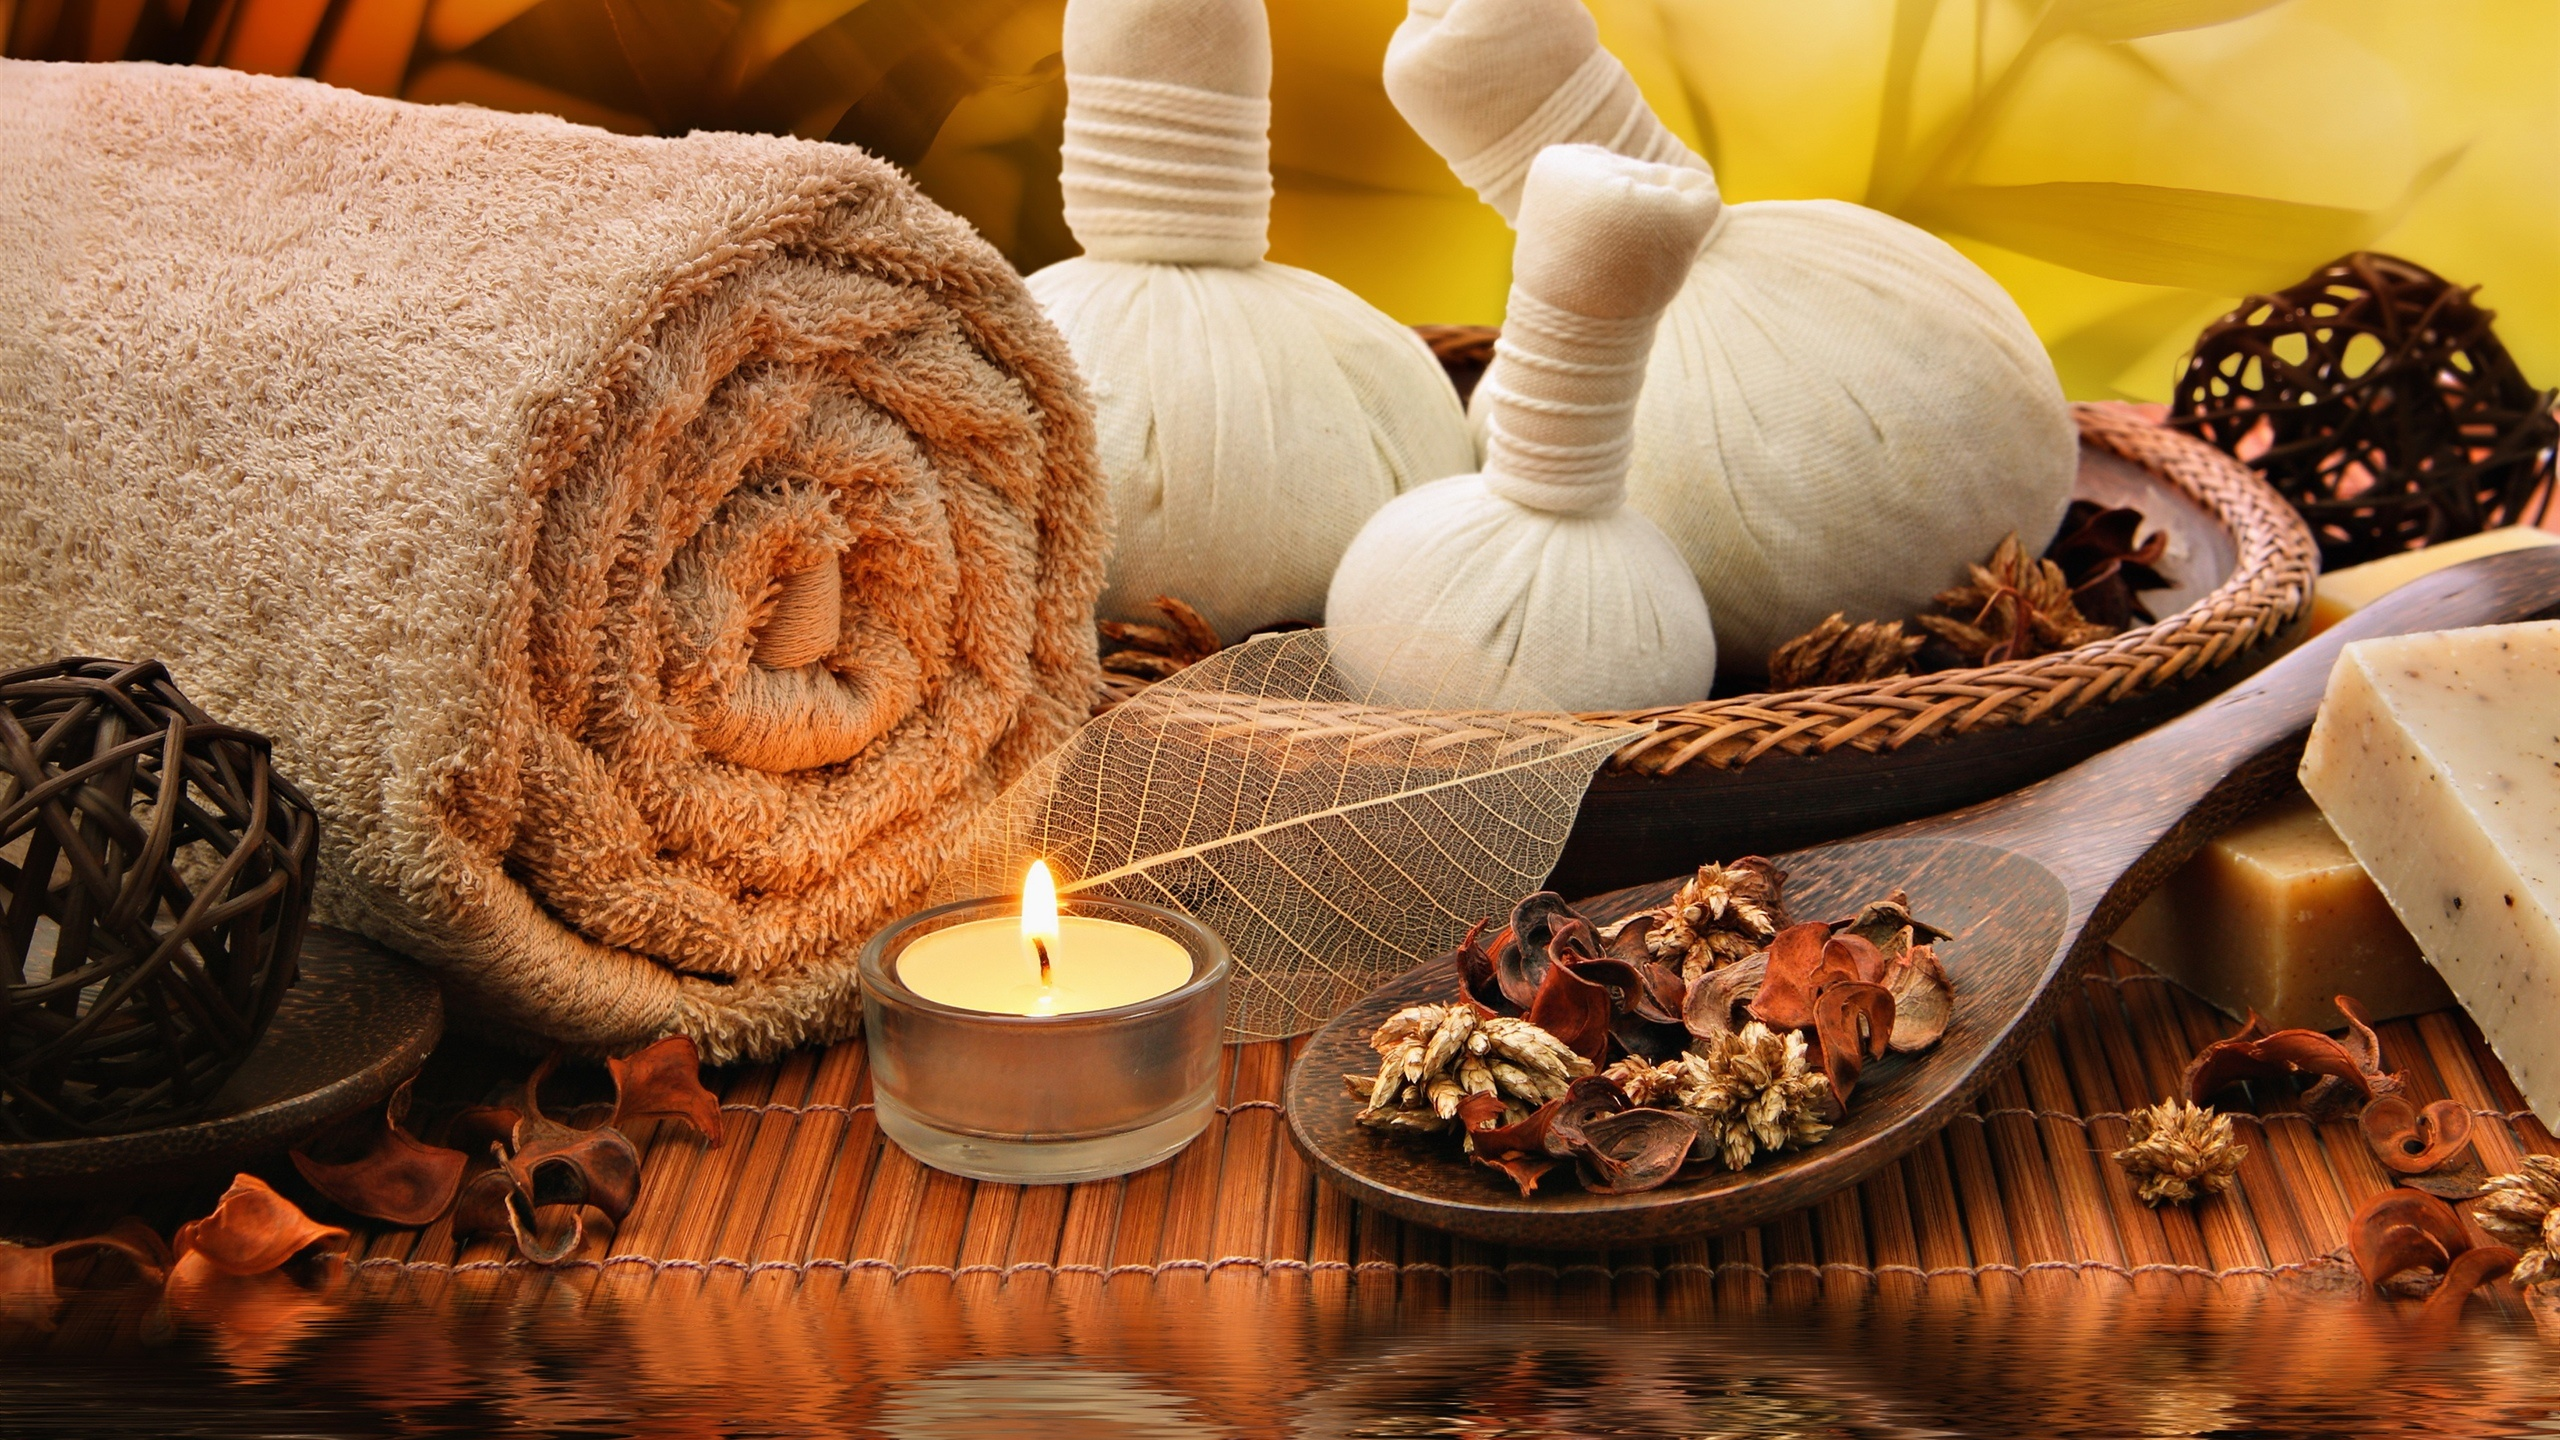 Towel, candle, salt, SPA 2560x1440 wallpaper